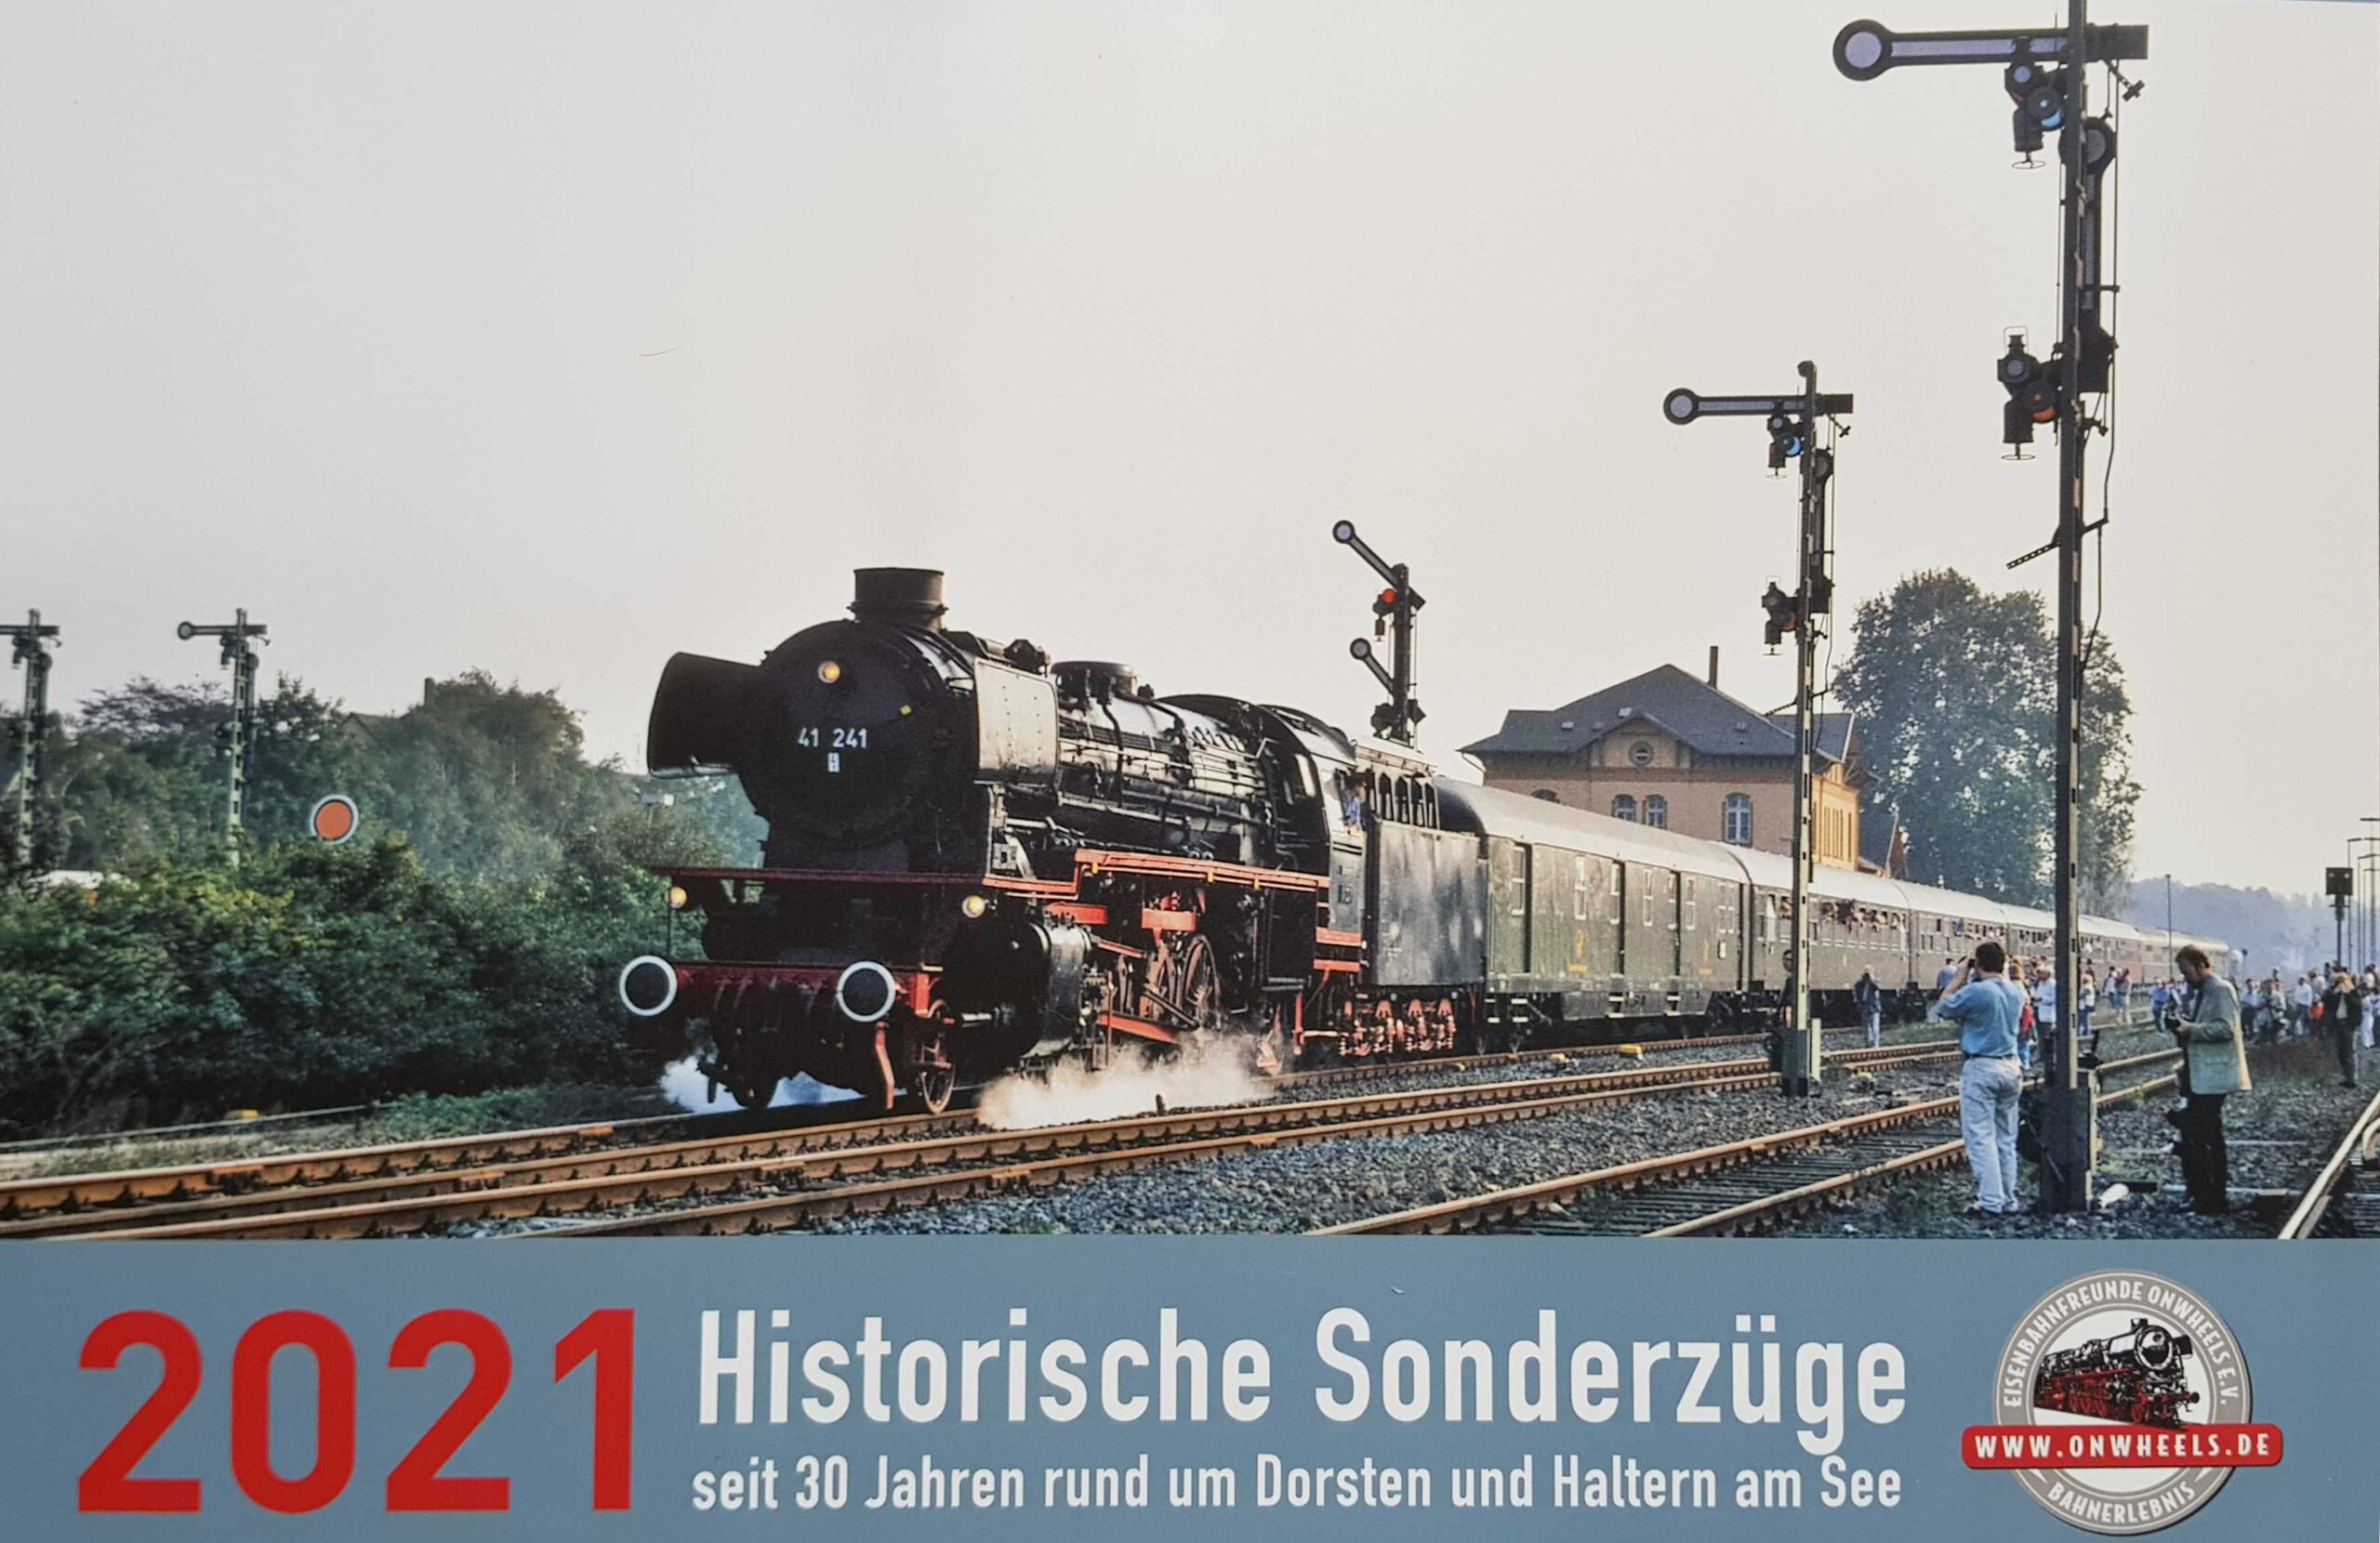 https://home.onwheels.de/wp-content/uploads/2020/11/Titelblatt_Kalender-2021_Sonderzug-in-Dorsten-1993-scaled.jpg